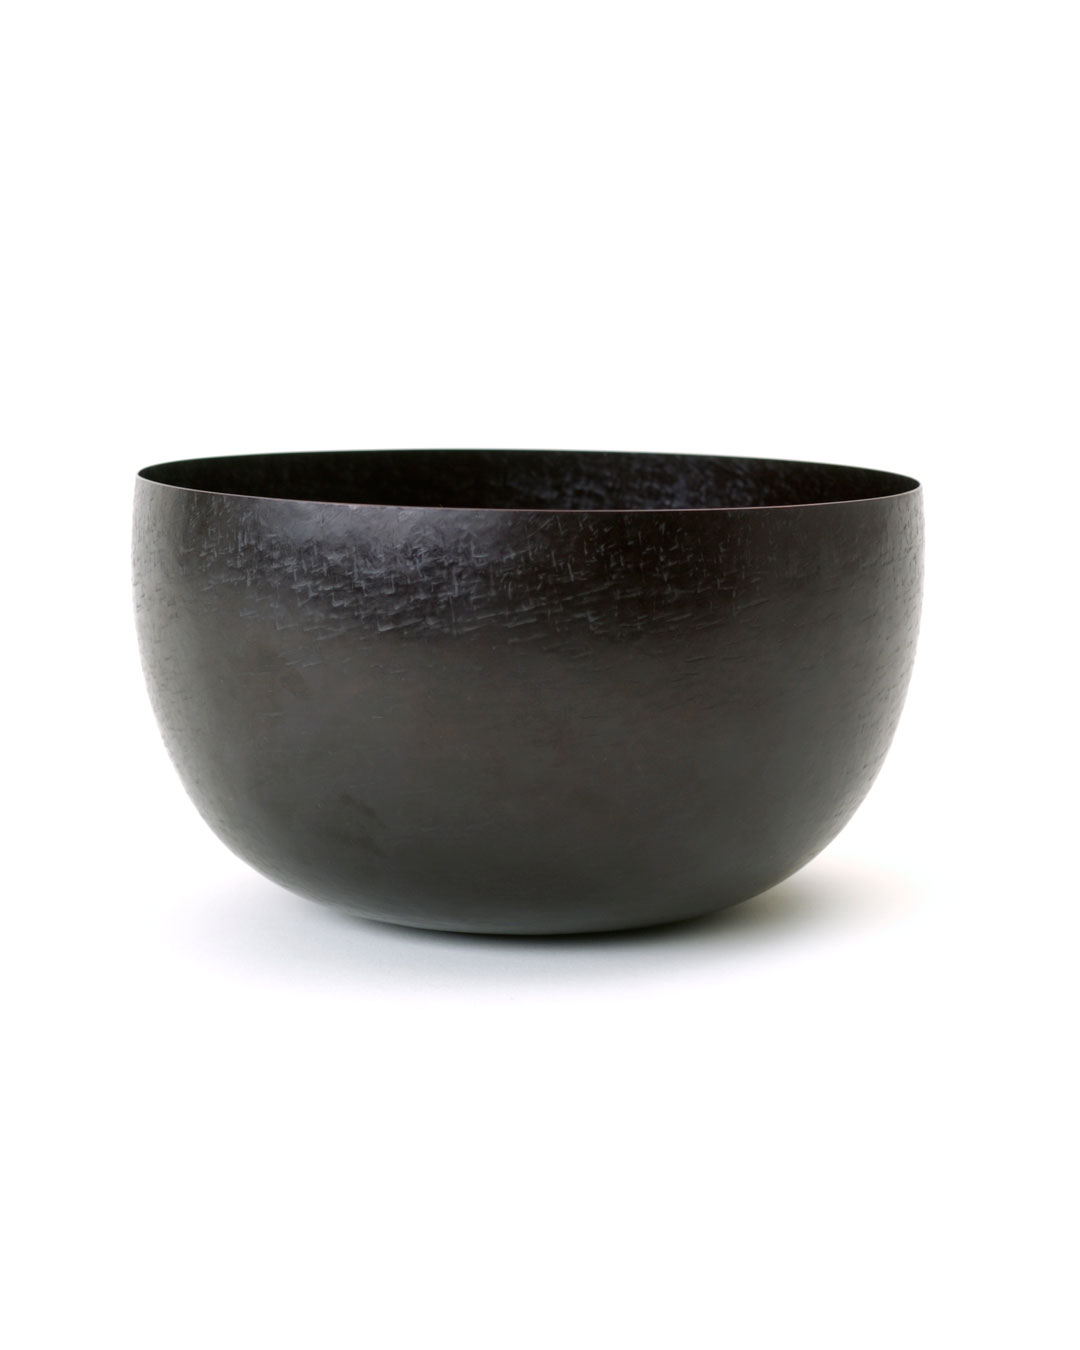 Tore Svensson, untitled, 2000, bowl; iron, partly gilt, 135 x ø 250 mm, €3500